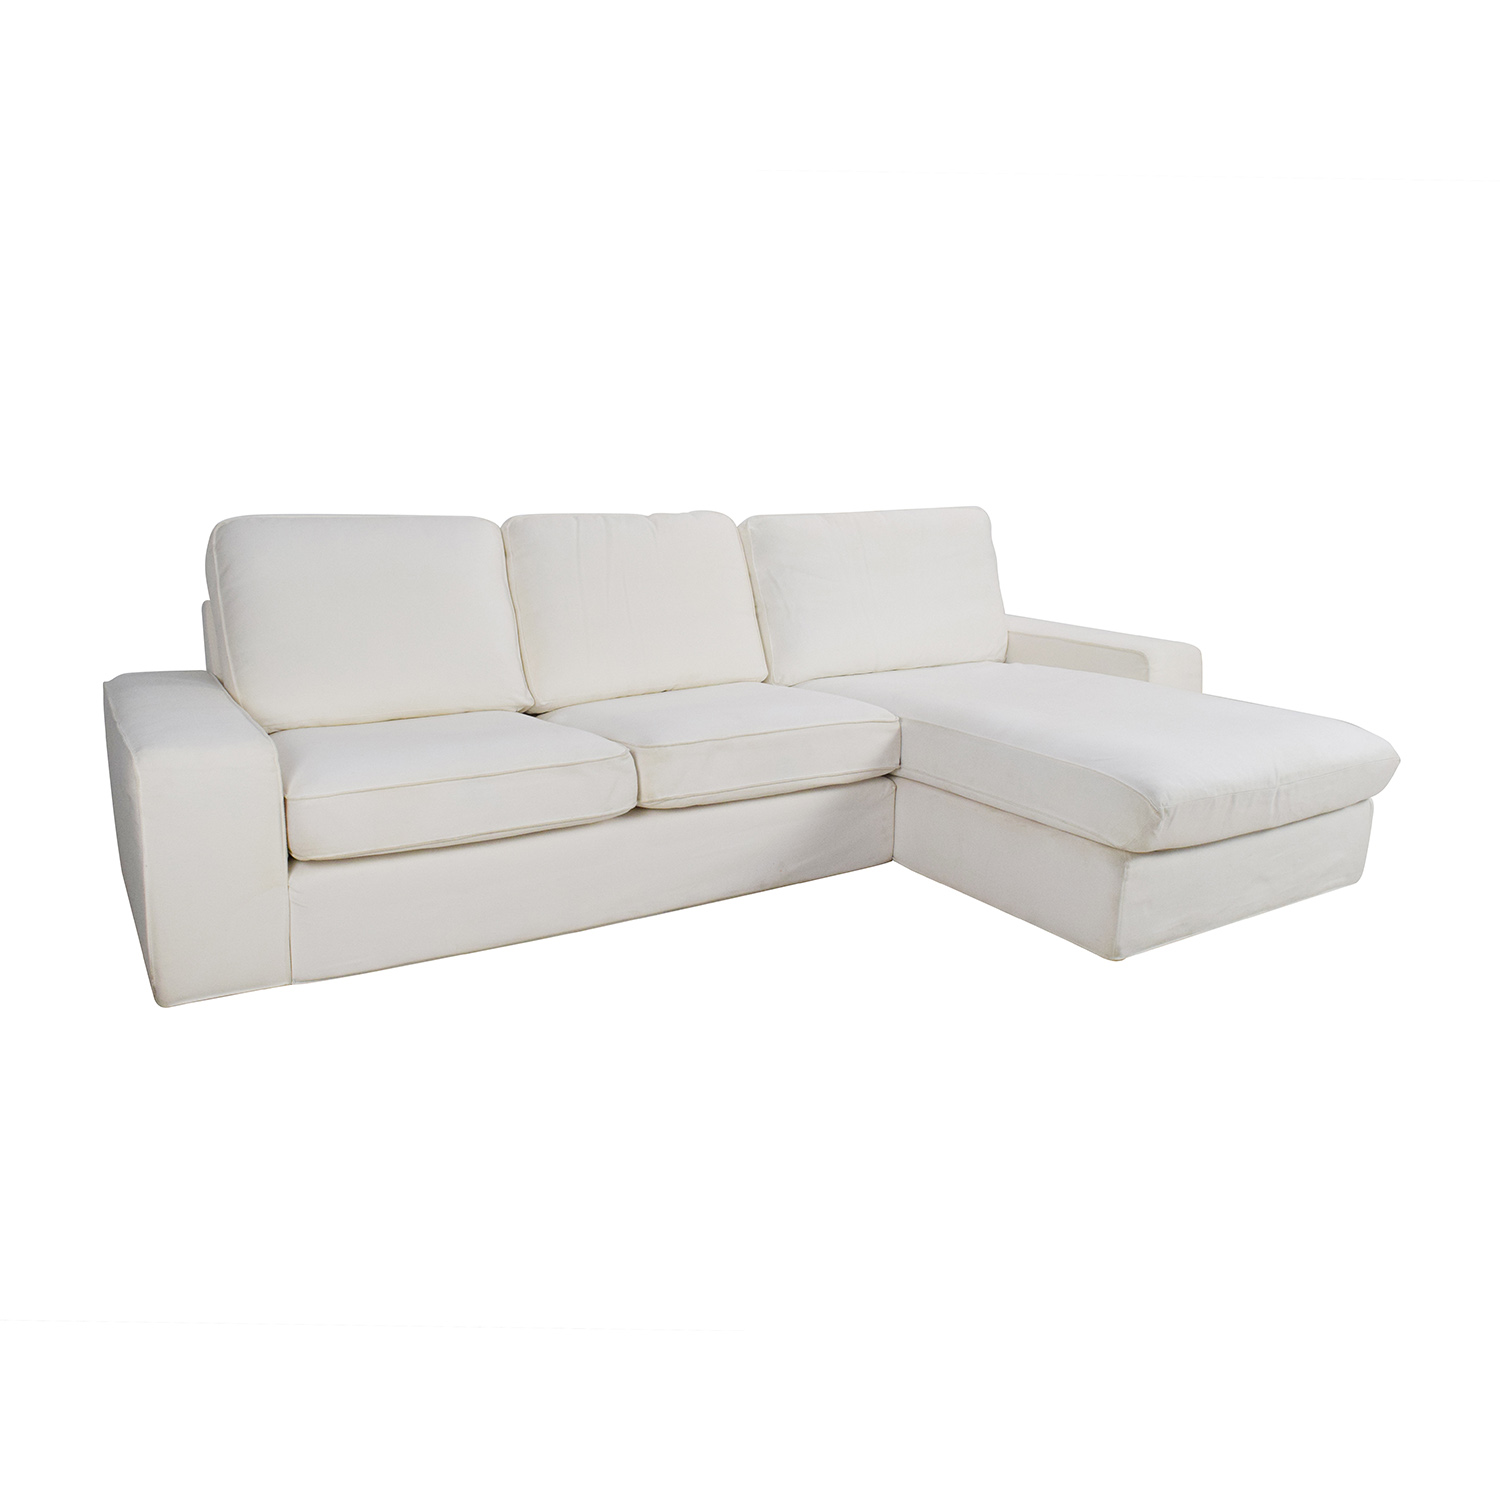 69 off ikea ikea kivik sofa and chaise sofas for Kivik chaise ikea